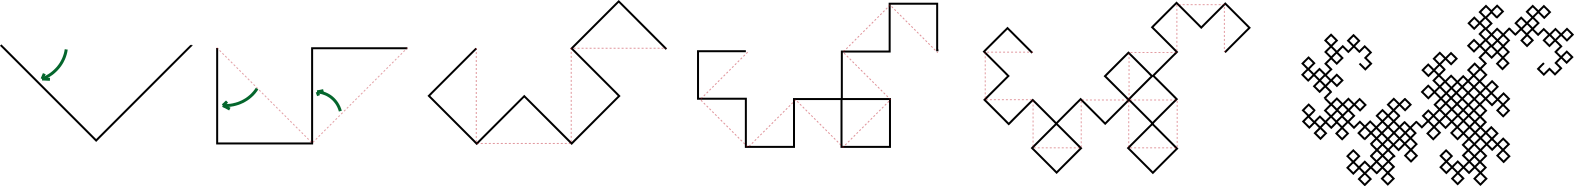 dragon_curve_iterations_2_svg.png